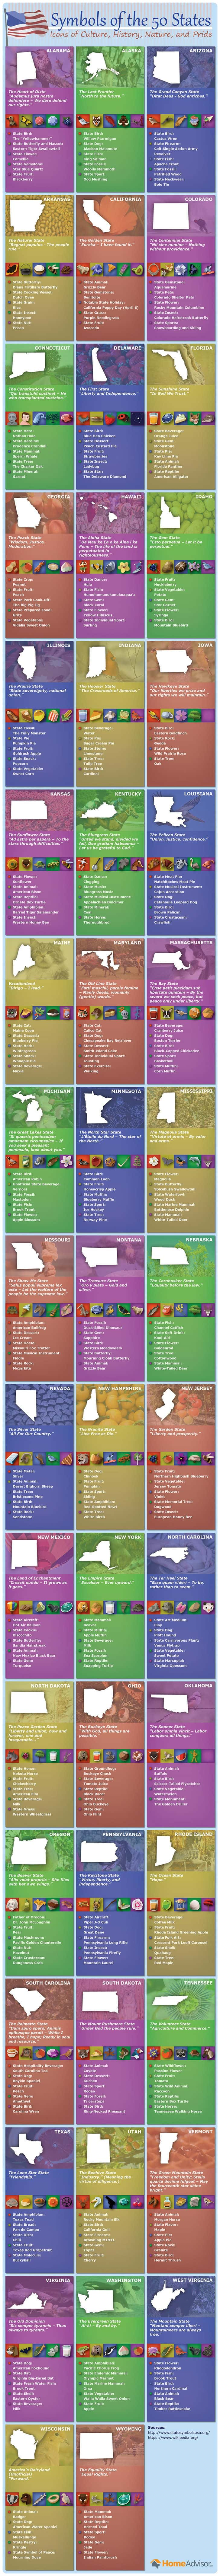 """The official """"stuff"""" of all 50 states – Imgur"""